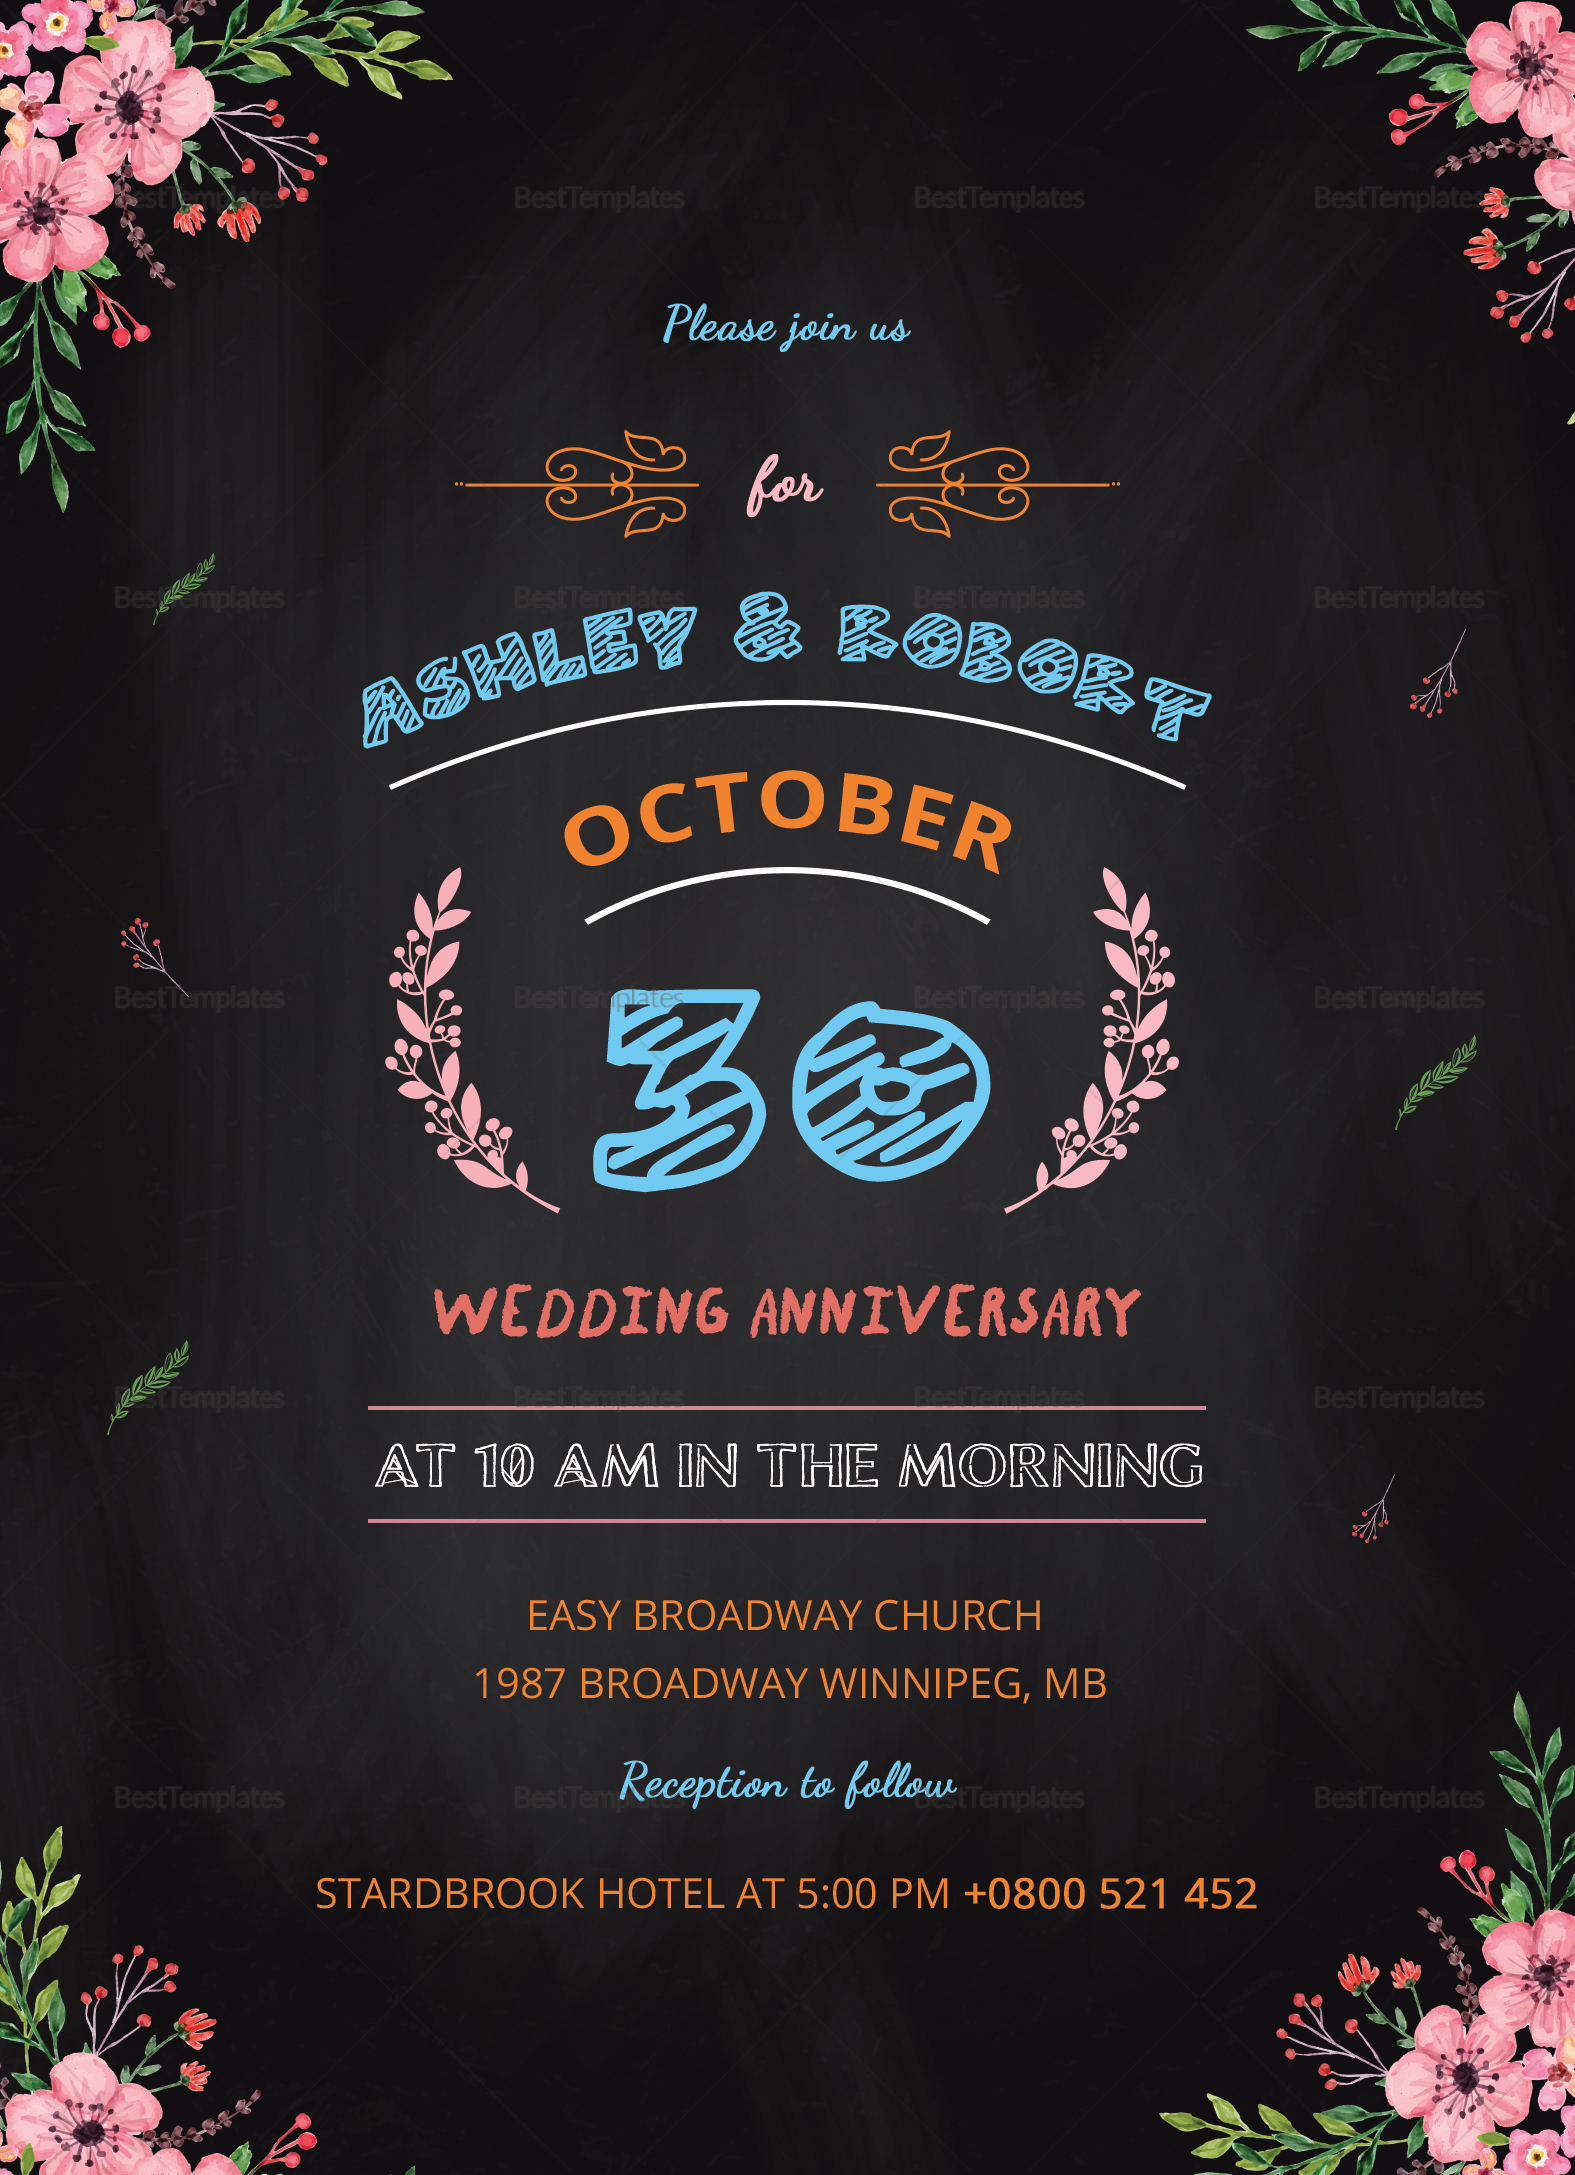 Chalkboard Wedding Anniversary Invitation Design Template